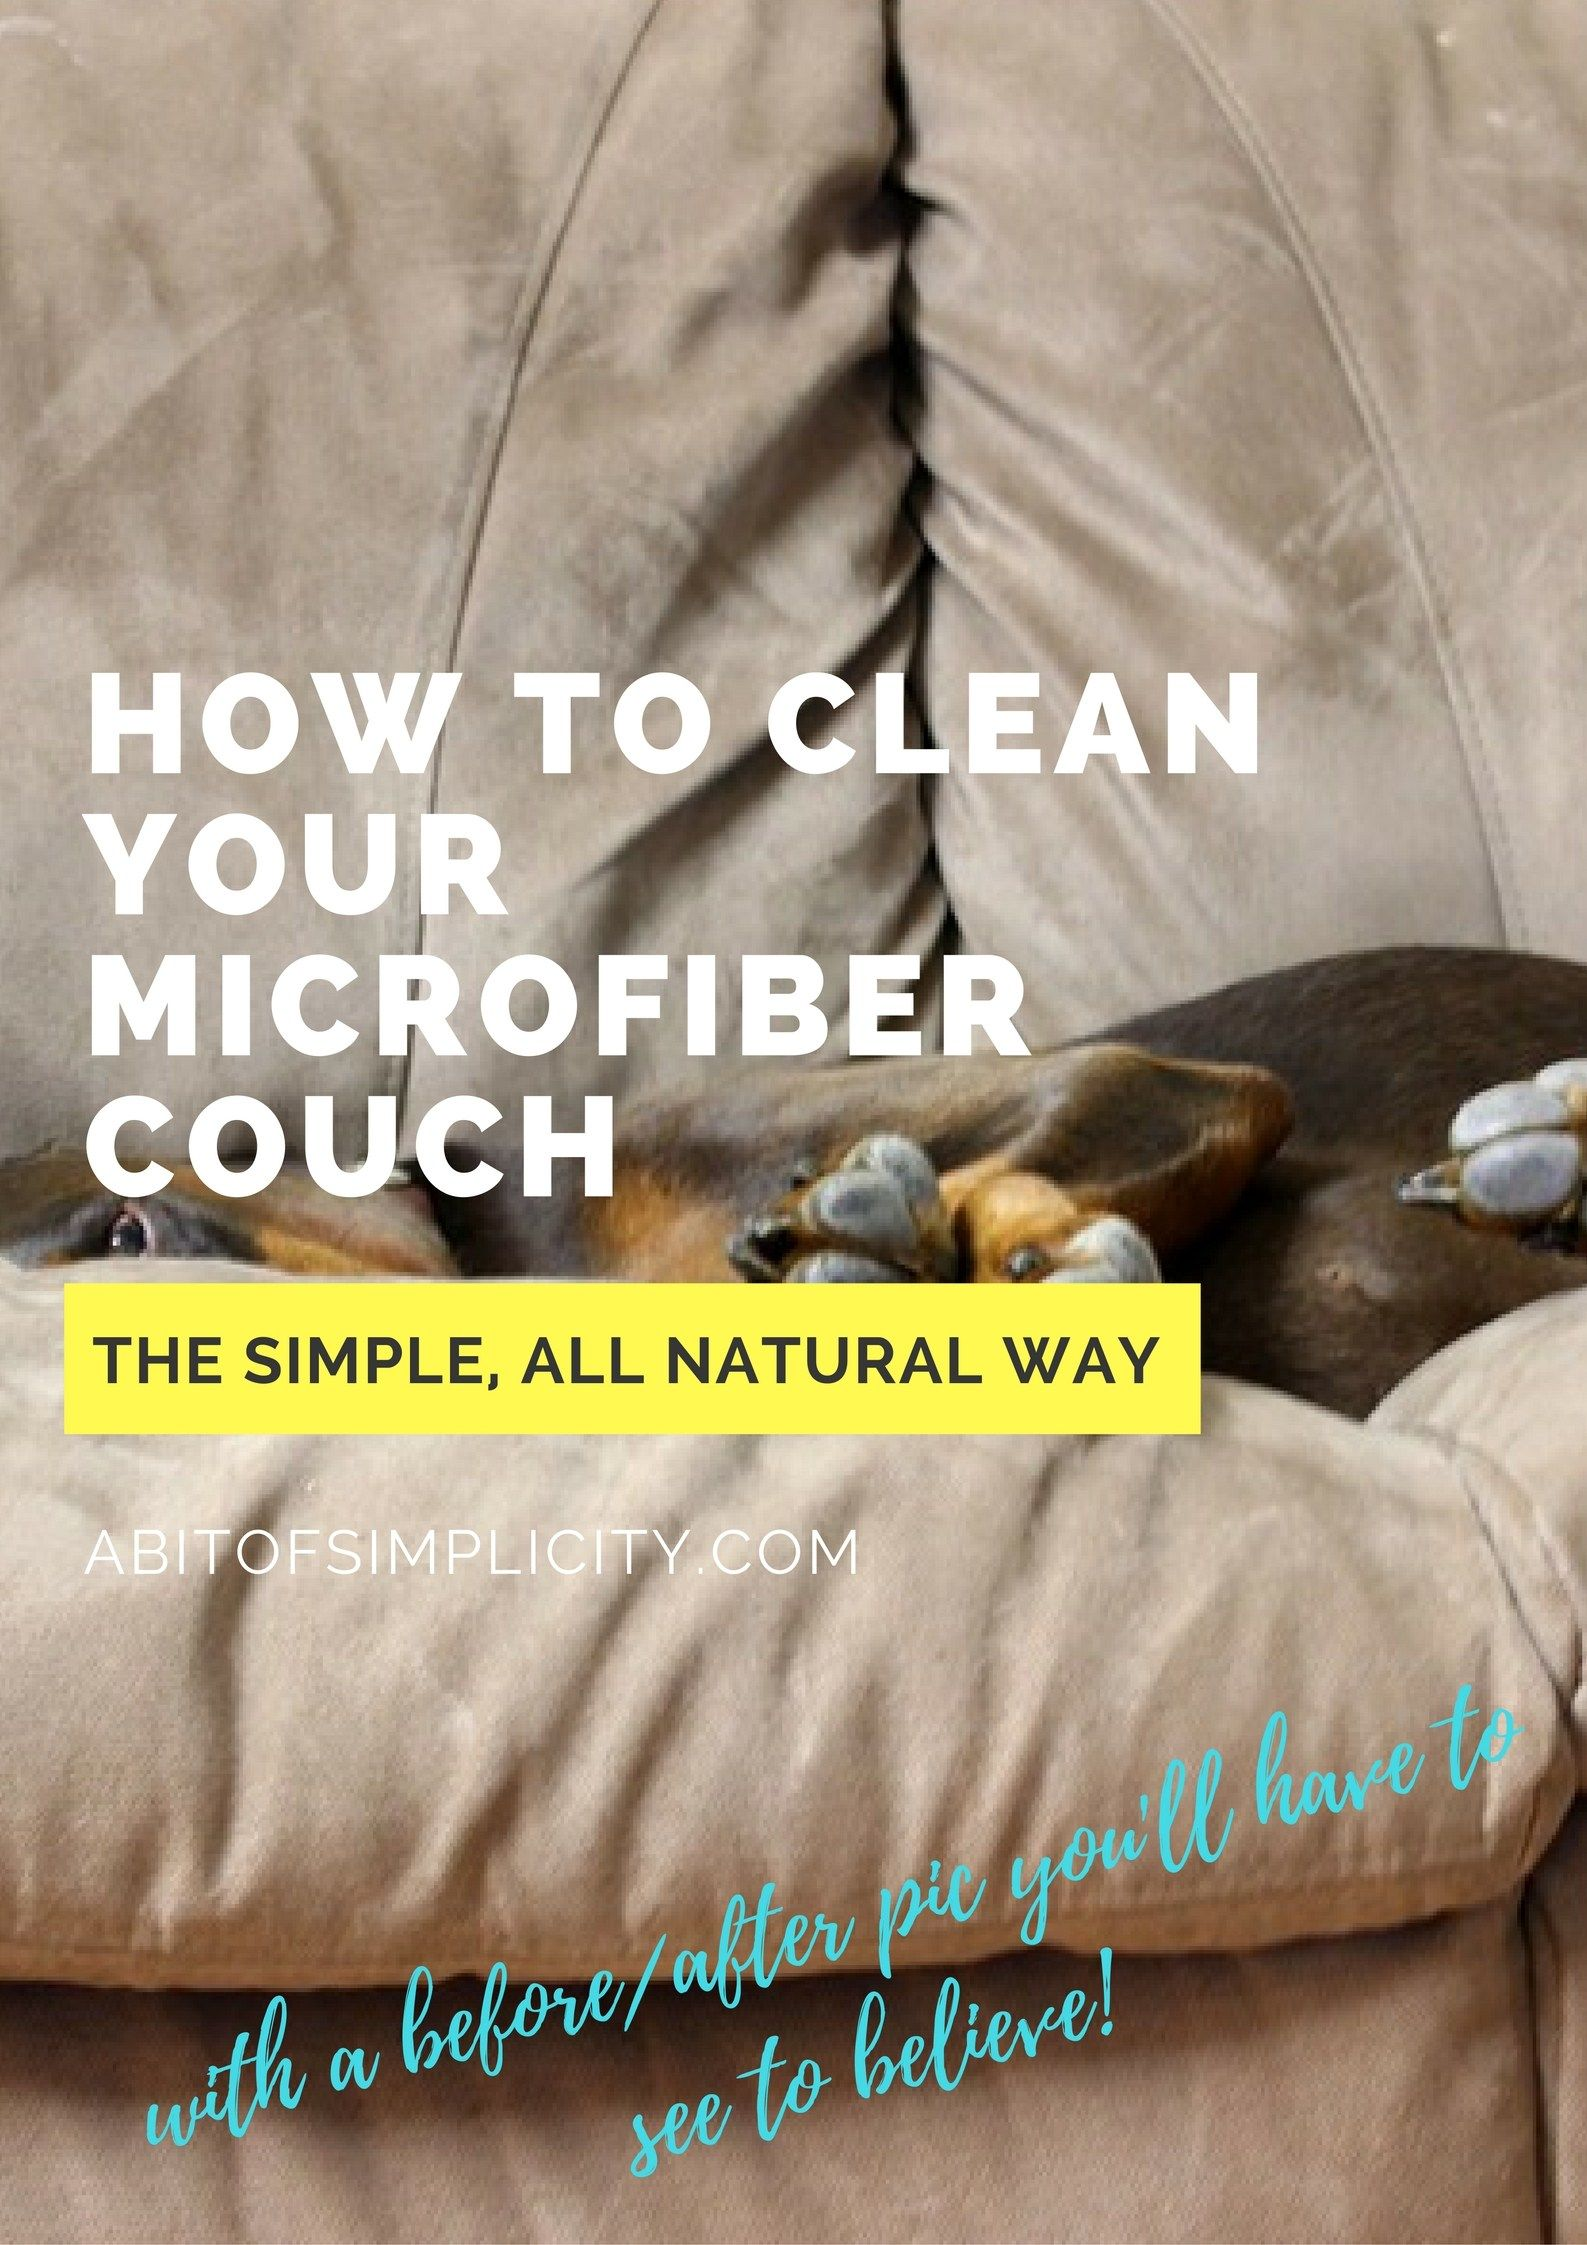 How To Clean Your Microfiber Couch DIY Couch Cleaner Homemade Sofa